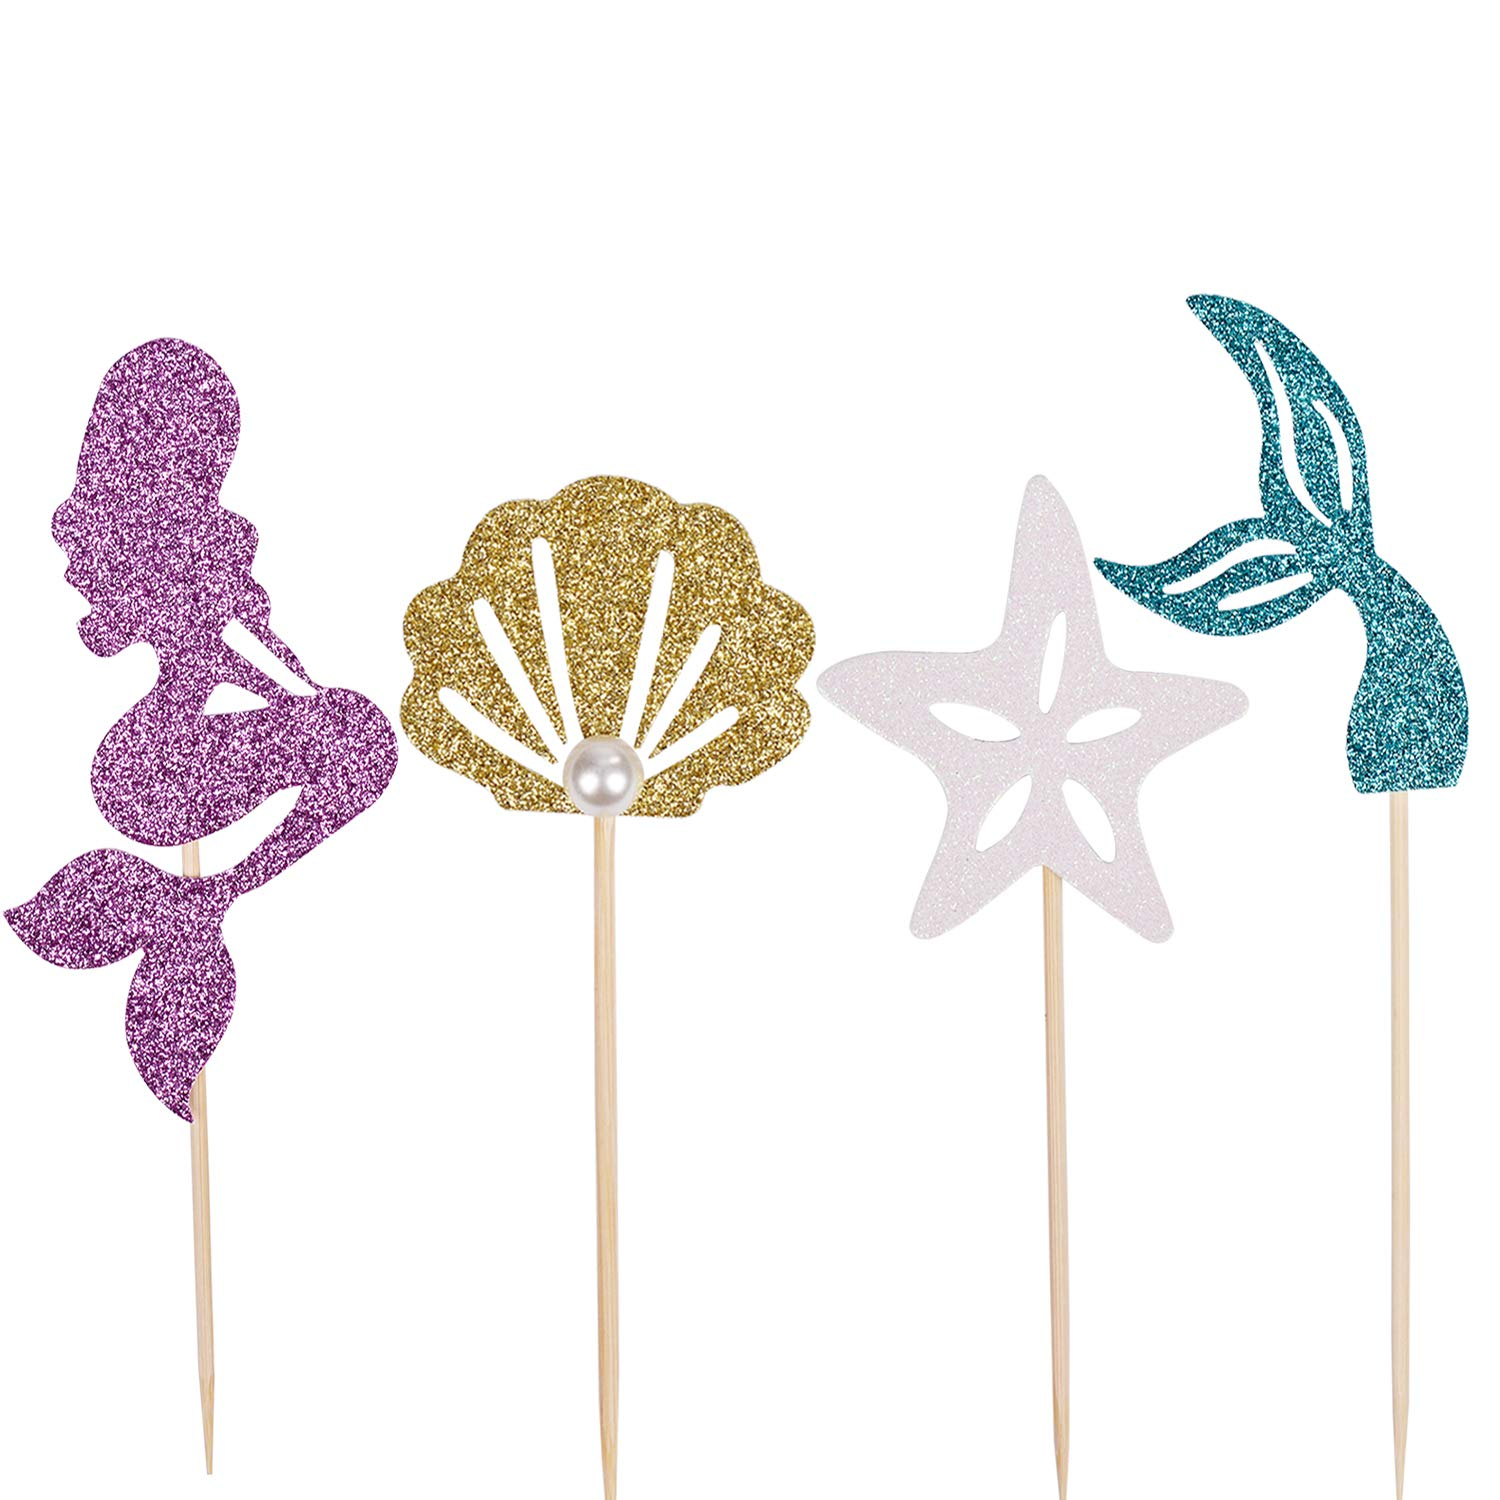 Since1989 Mermaid Cupcake Toppers Party Supplies for Baby Shower, Under the Sea, Birthday Party, 24 Packs (Toppers)